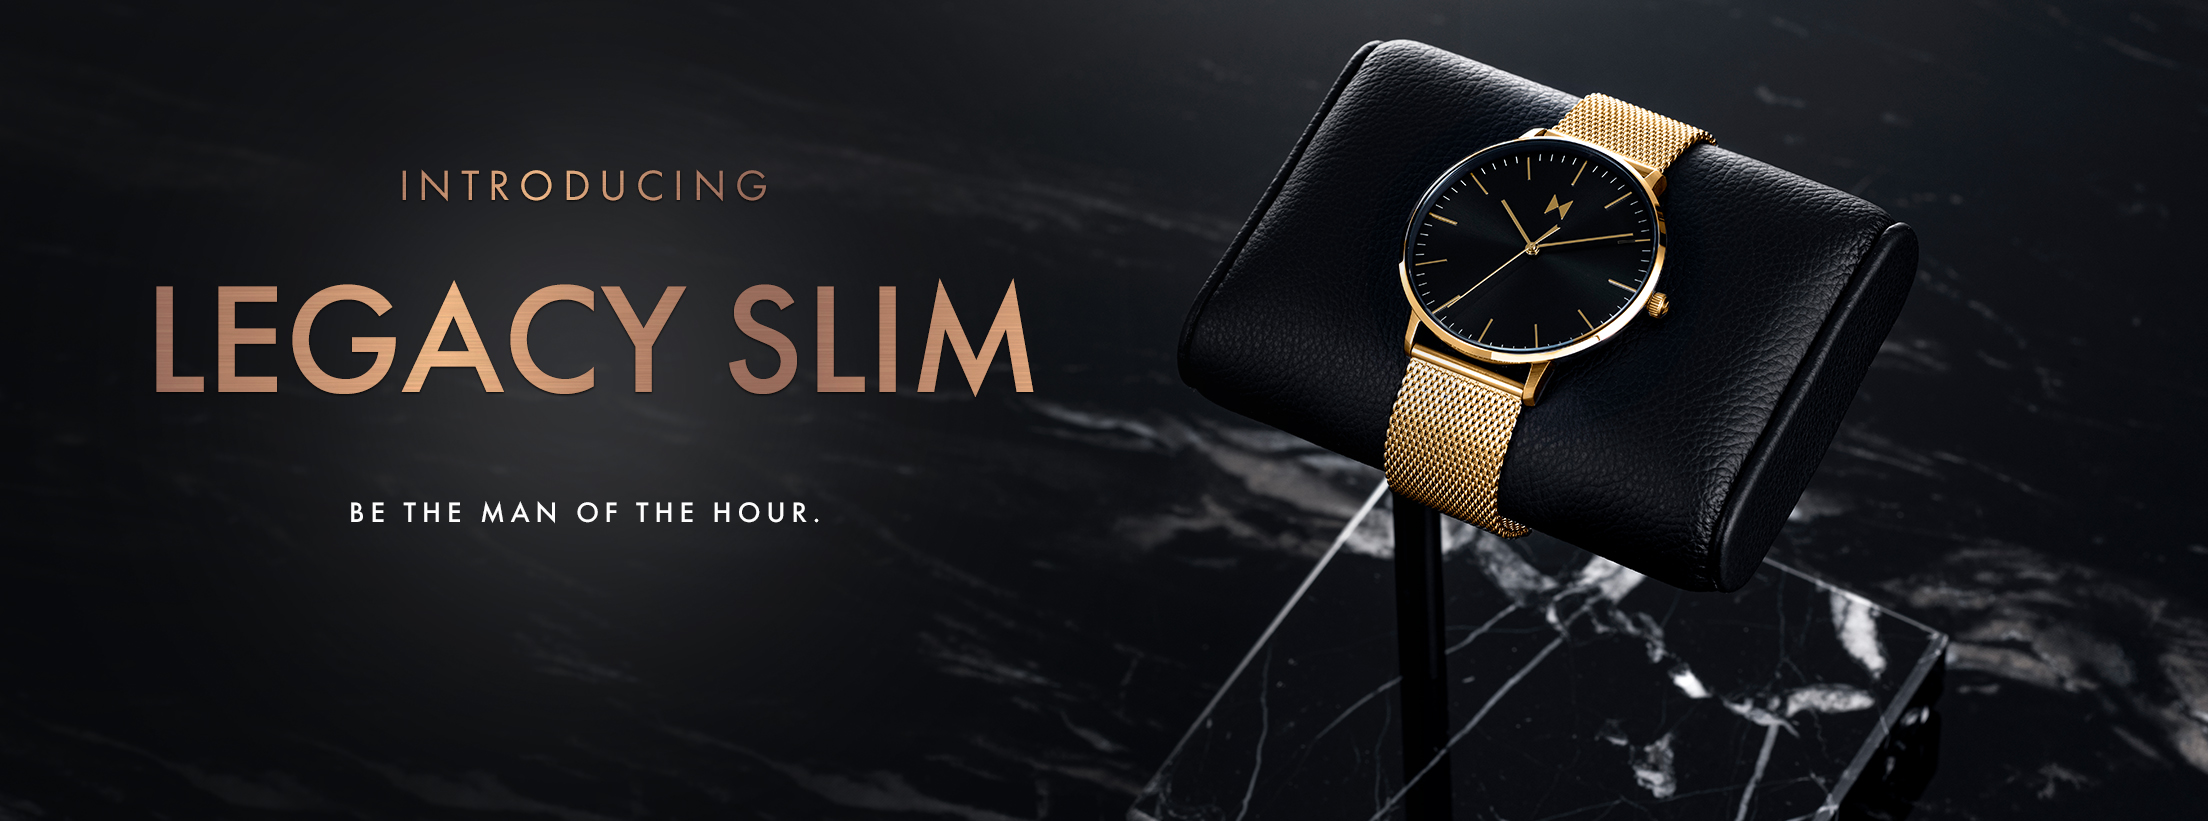 Introducing Legacy Slim. Be the man of the hour.